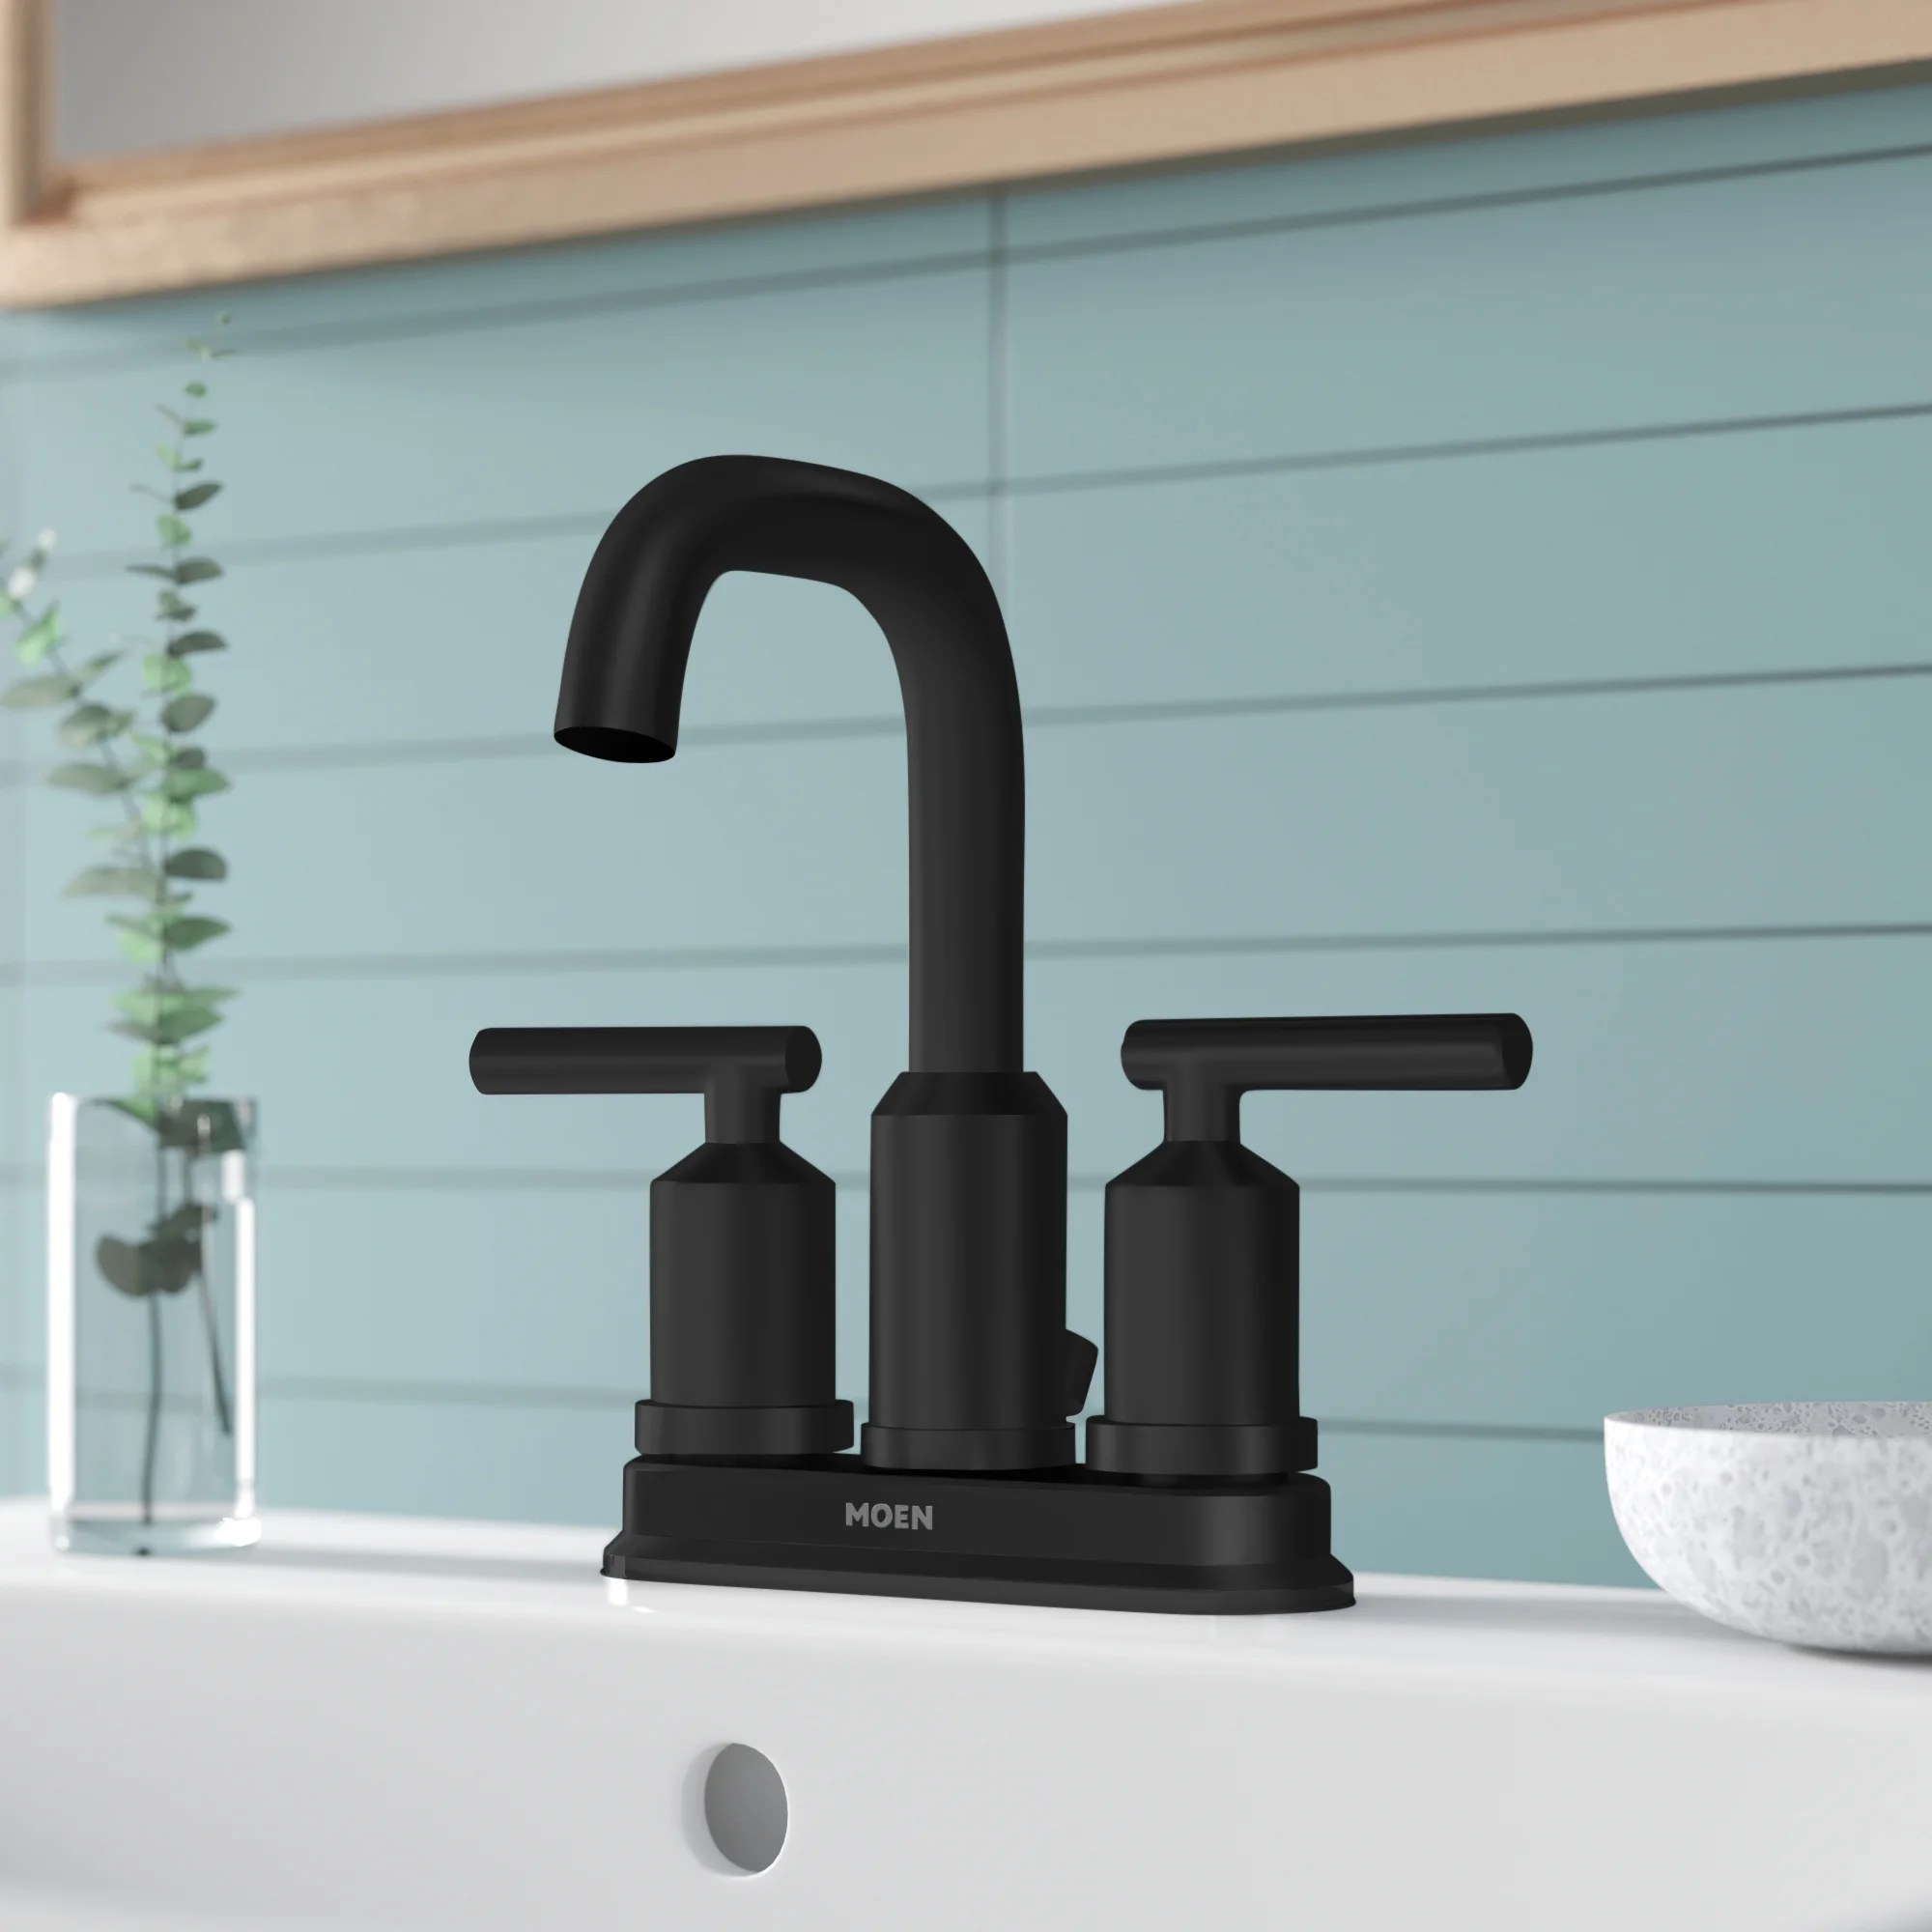 gibson centerset bathroom faucet with drain assembly